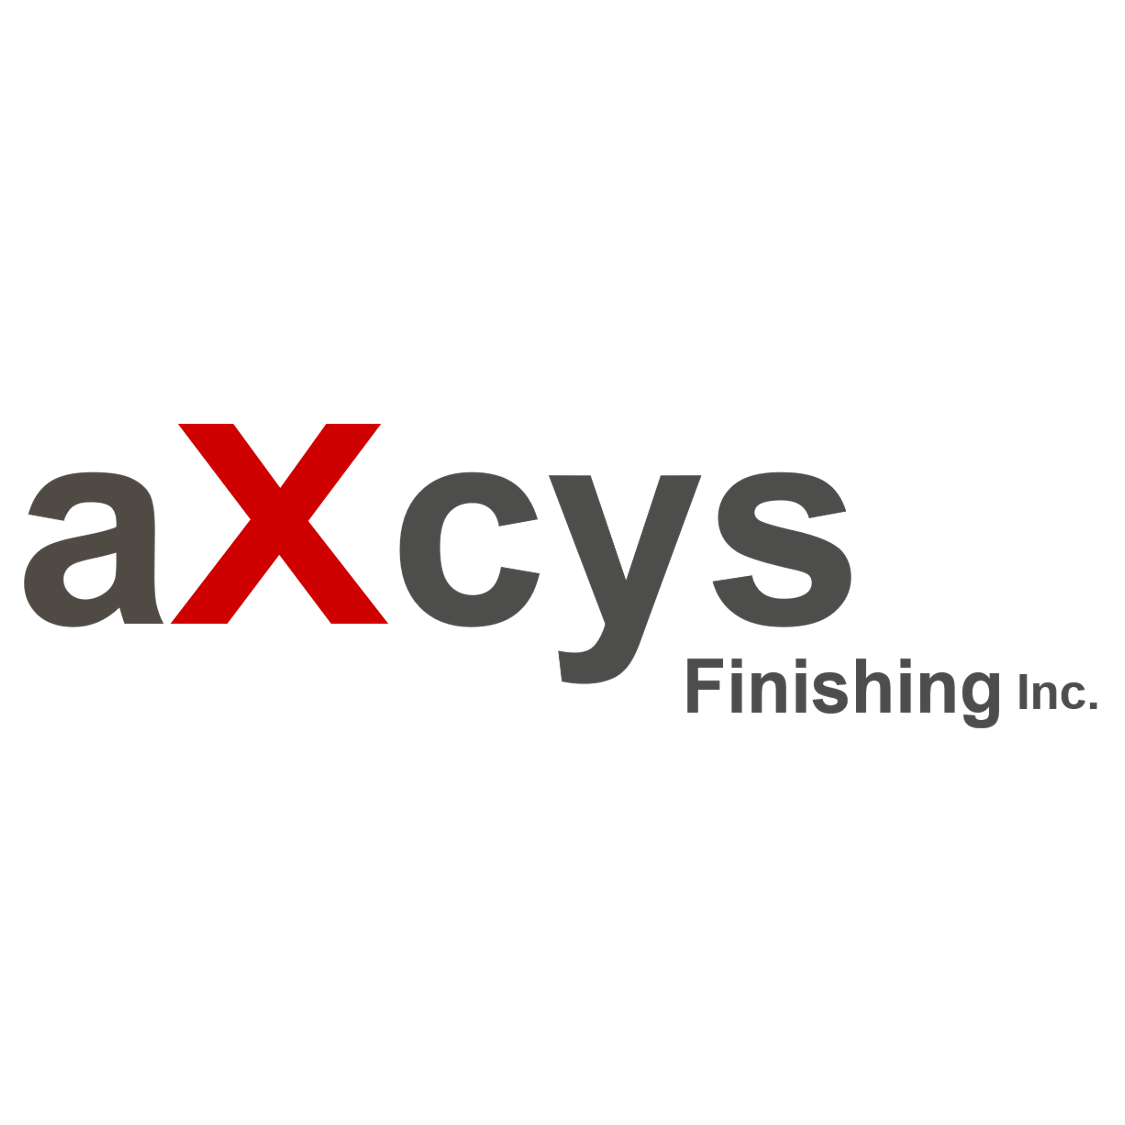 Axcys Finishing